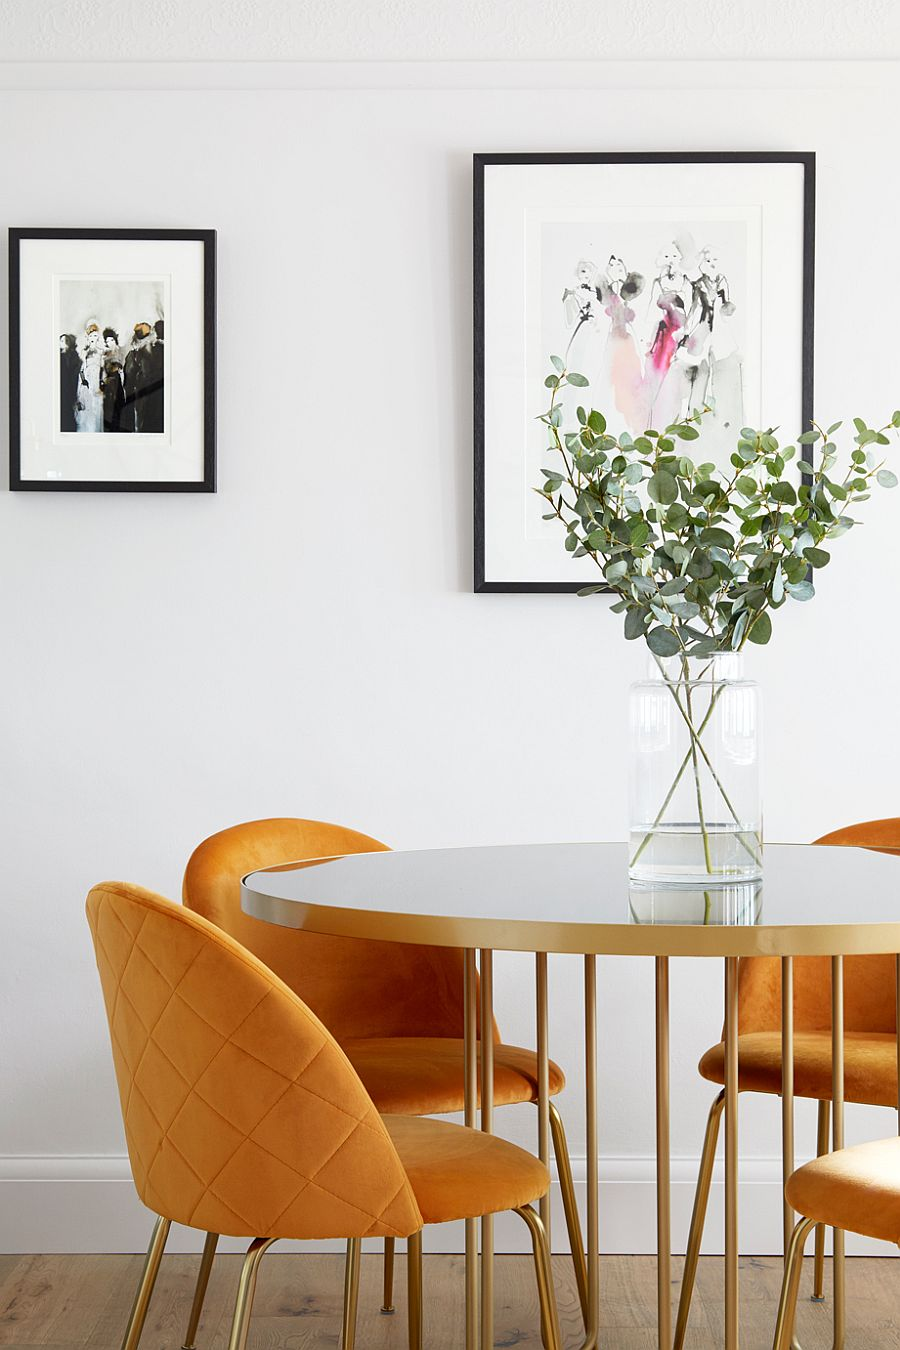 Decorating the modern dining room with lovely framed art work